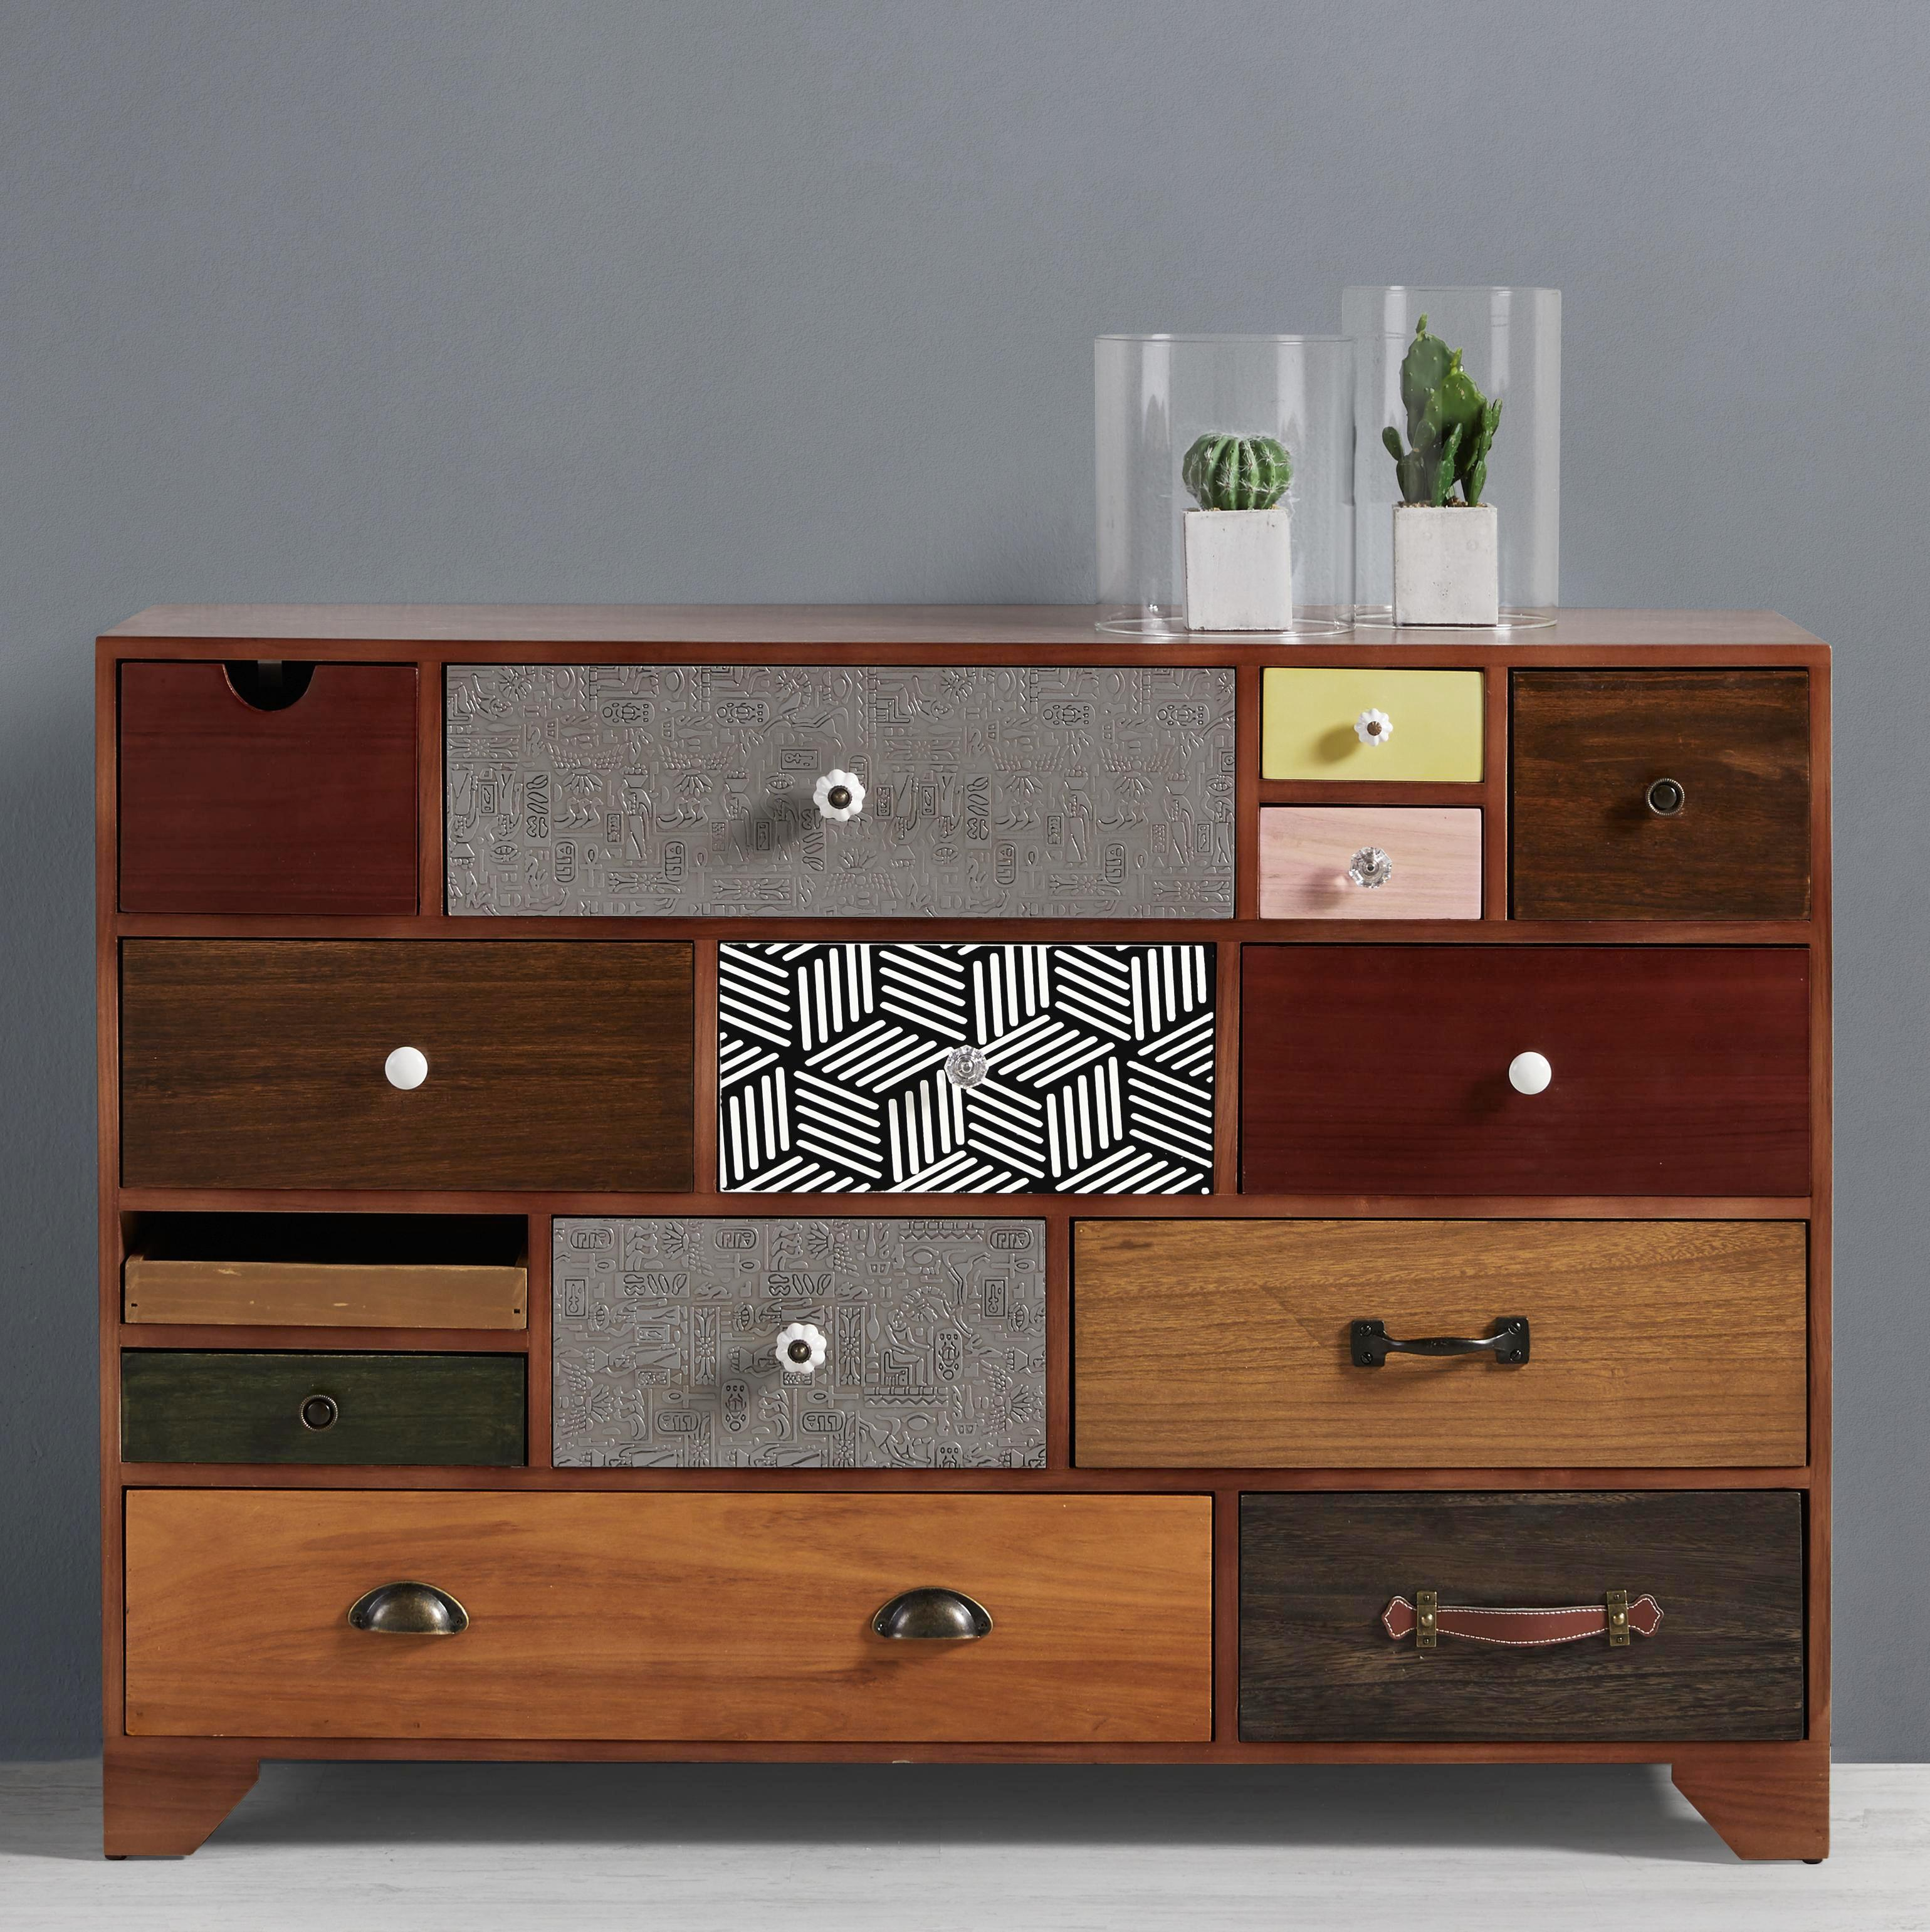 Tv Sideboard Holz Sideboard Metall Holz Gallery Of Tv With Sideboard Metall